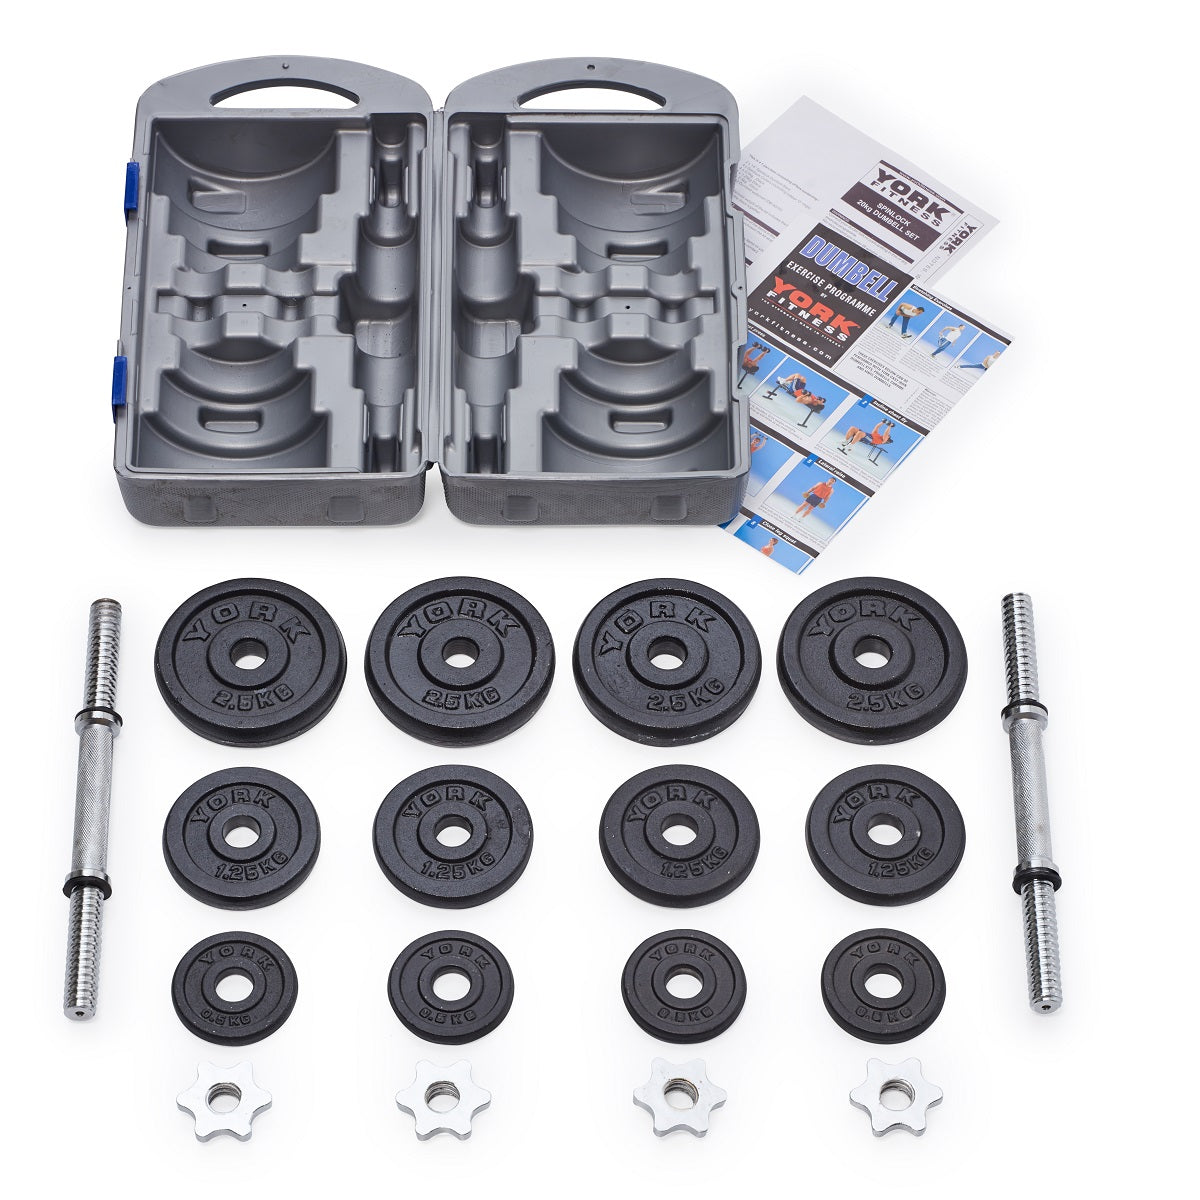 York Dumbbell Exercise Programme: Black Cast Iron Dumbbell Set In Case